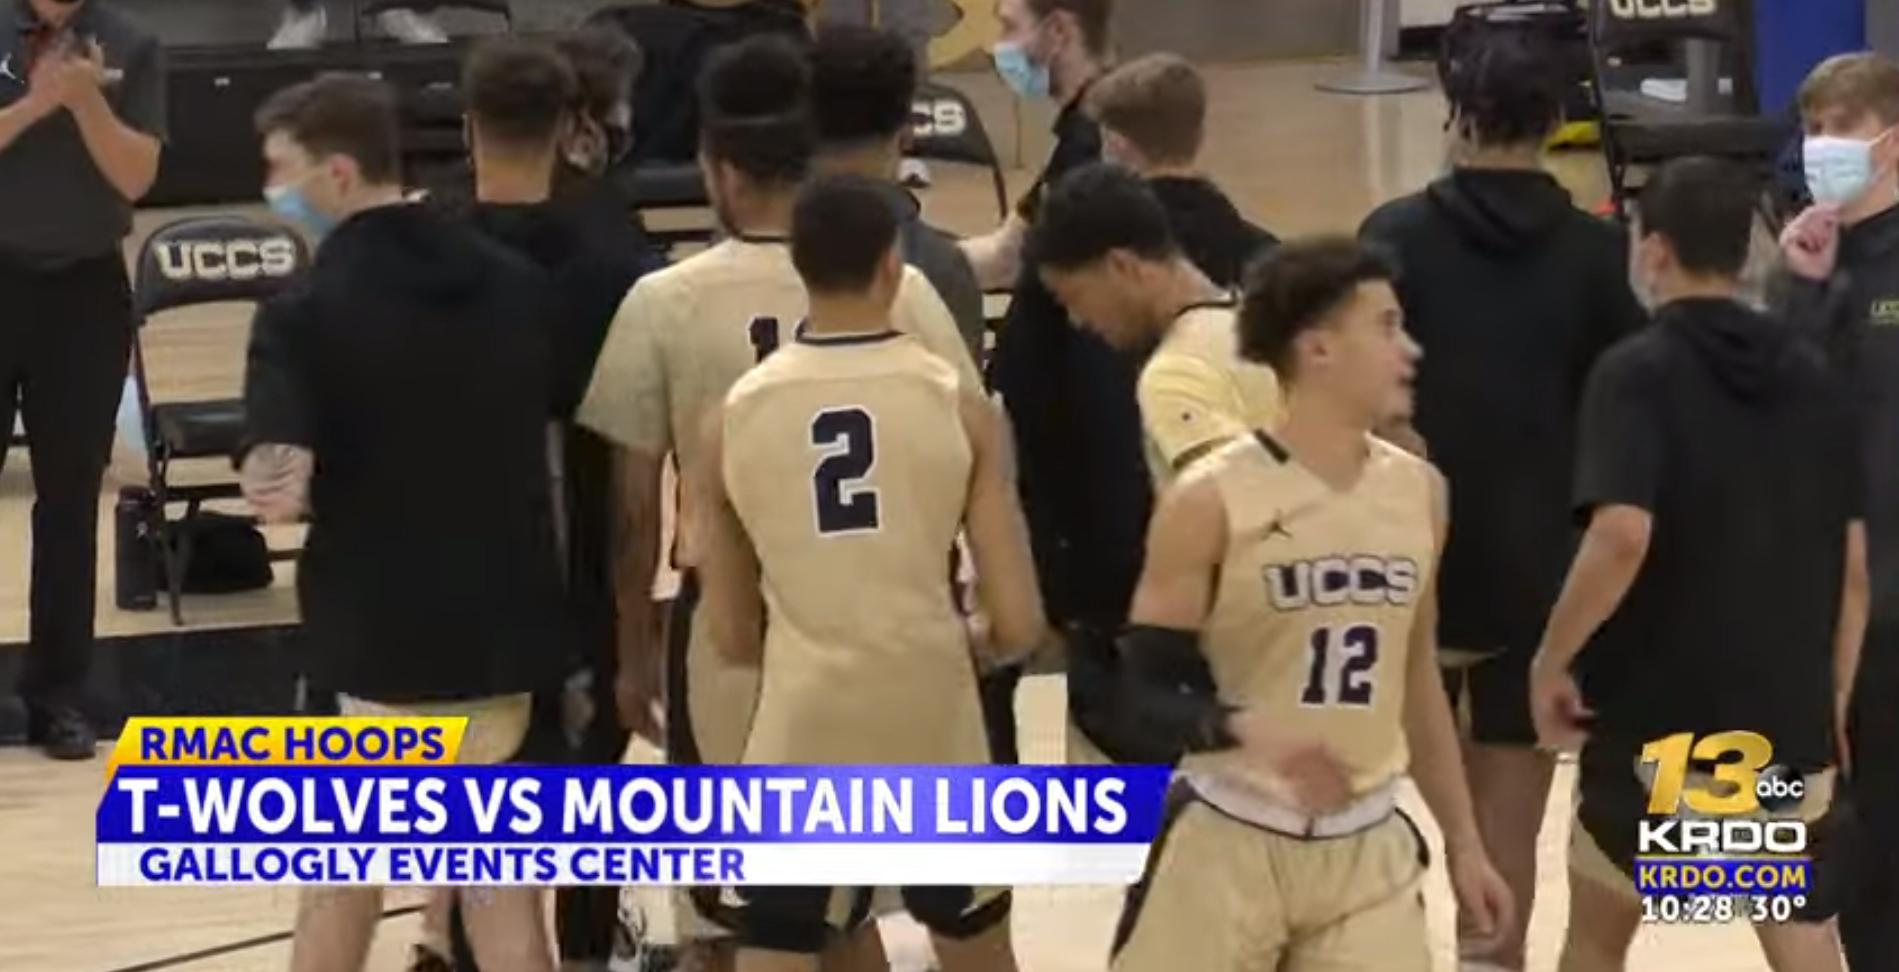 The UCCS men's basketball team after breaking a huddle